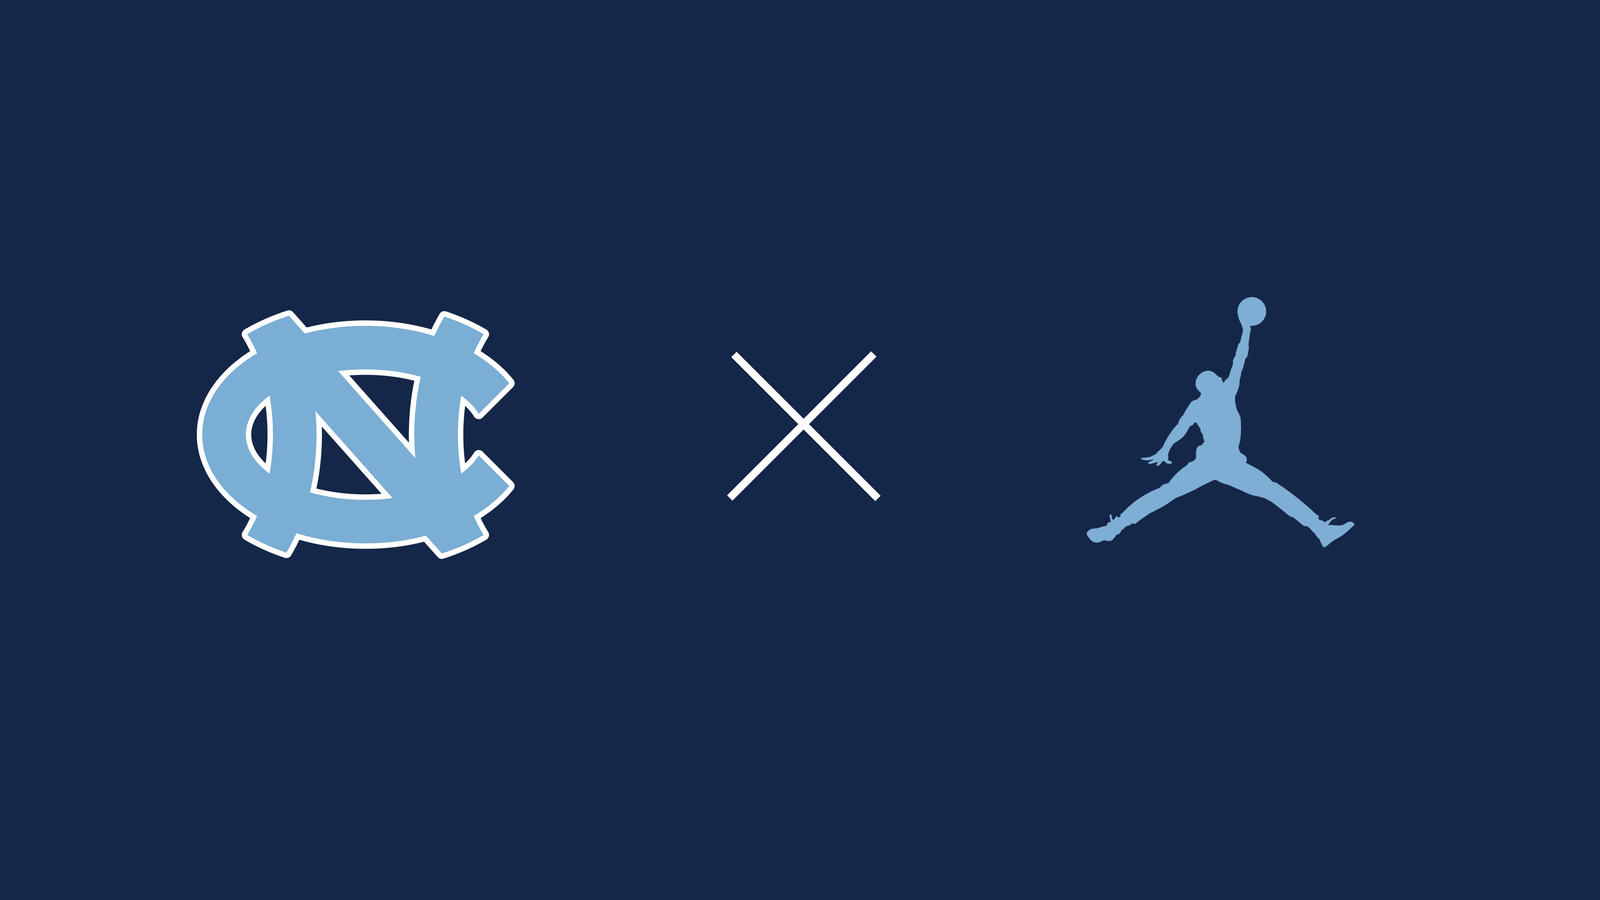 Jordan Brand Expands Partnership with UNC to Include Football 2